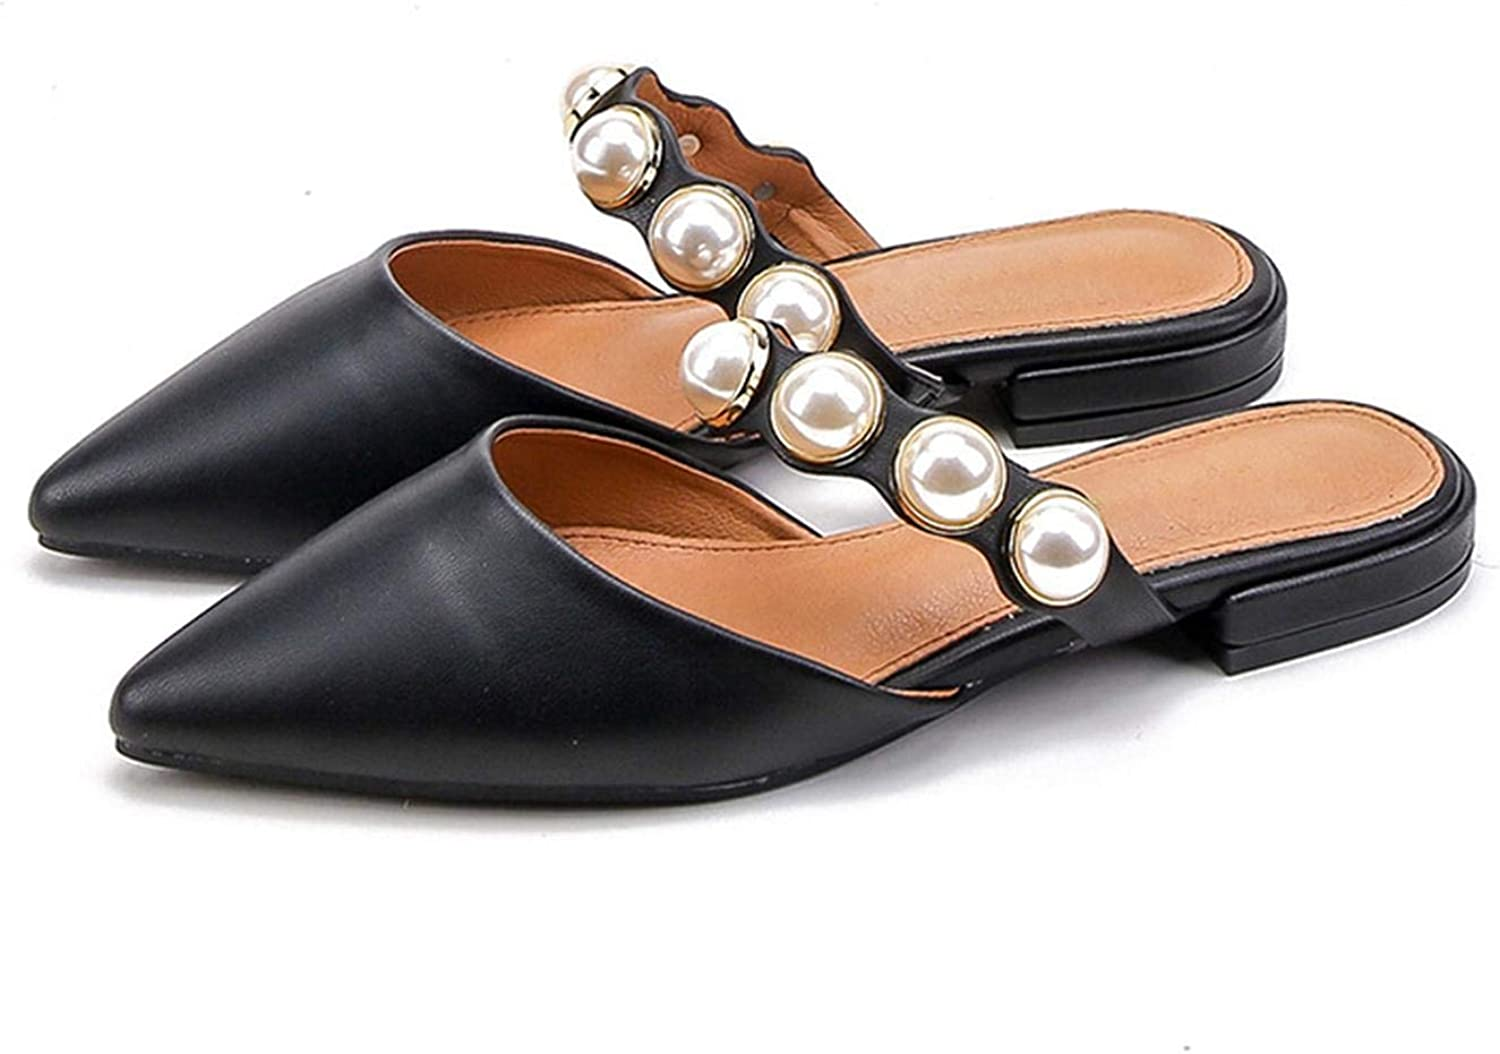 FAT BABY Pearl Flats shoes for Women Pointed Toe Elegant Women Mules Slip on Flat shoes for Women SWA0099